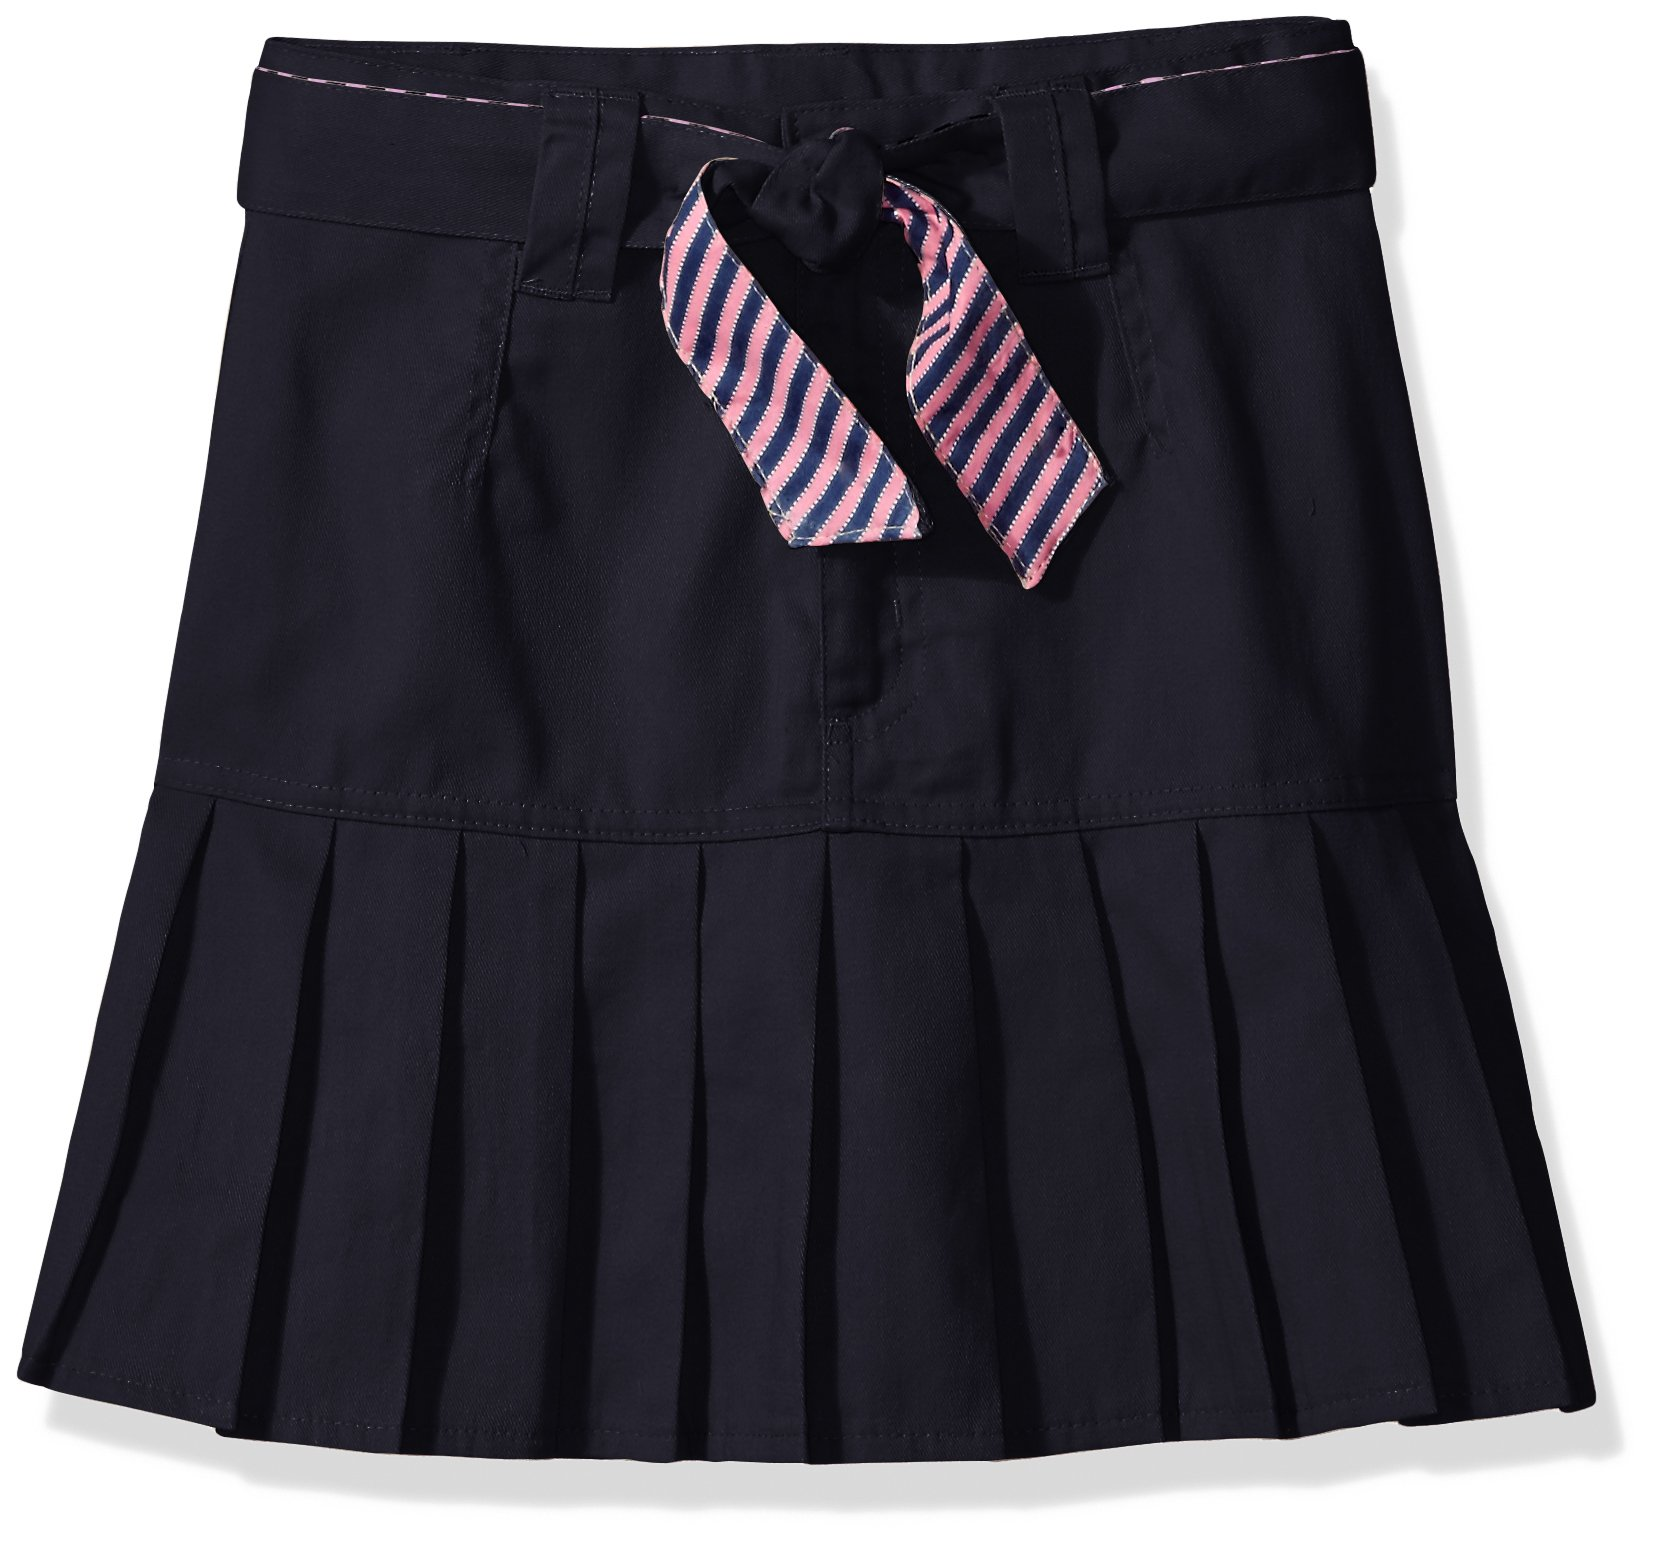 U.S. Polo Assn. Big Girls' Scooter (More Styles Available), Twill Navy-REDF, 8